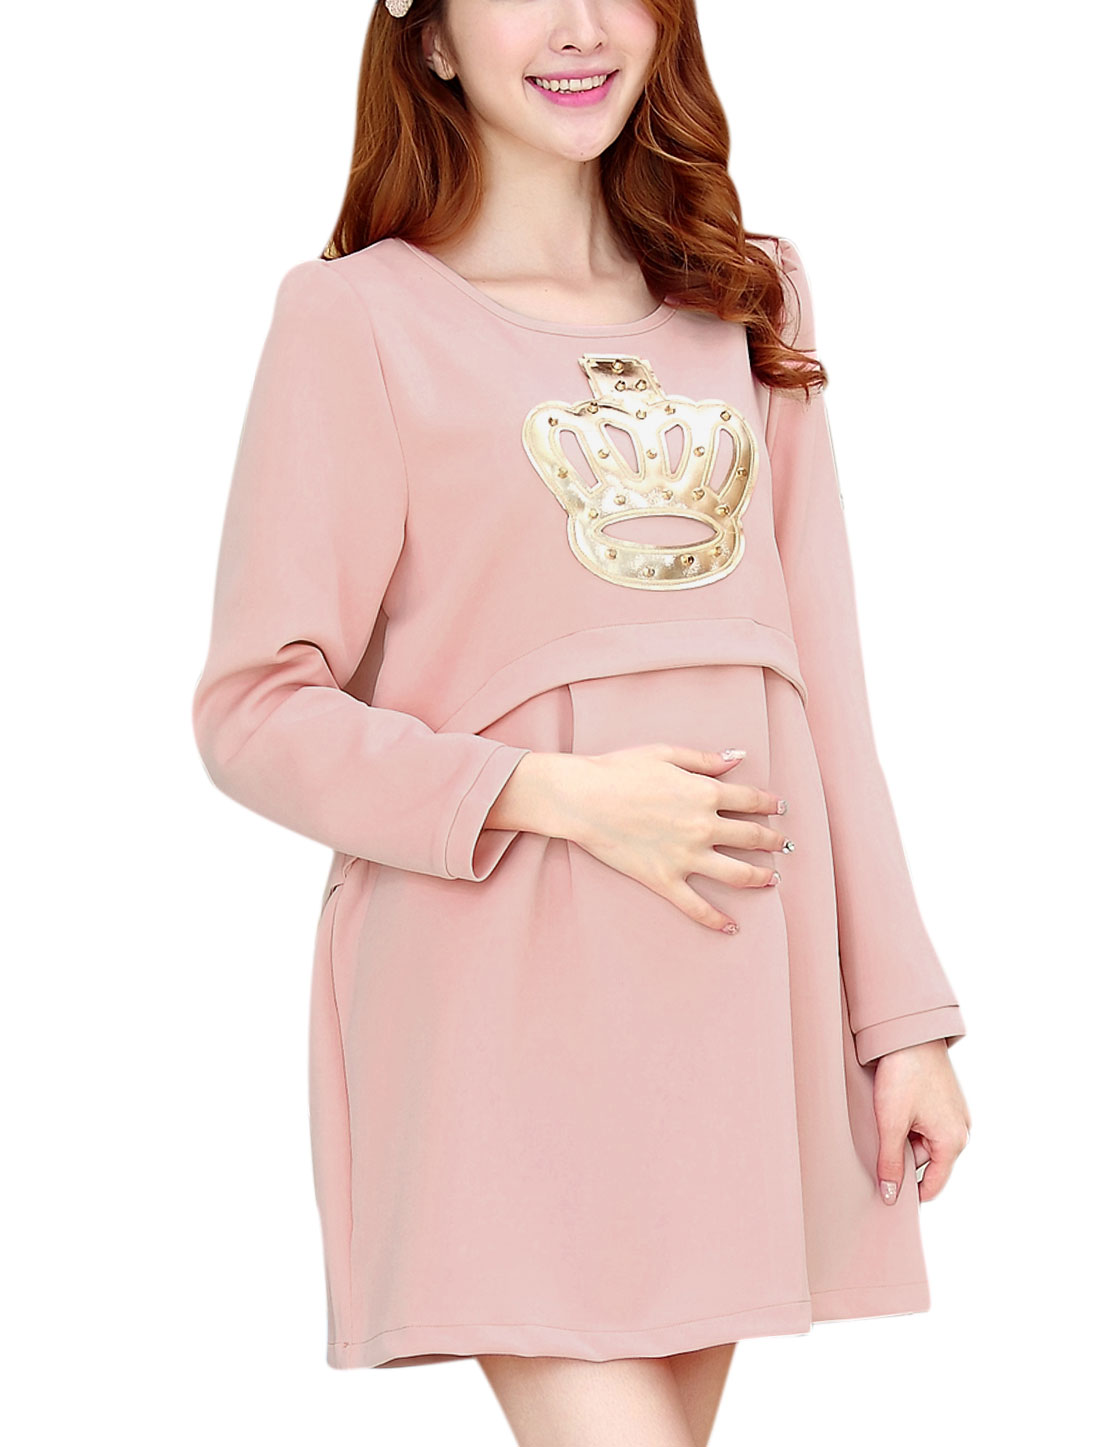 Maternity Long Sleeve Studs Embellished Slipover Short Dress Pink M